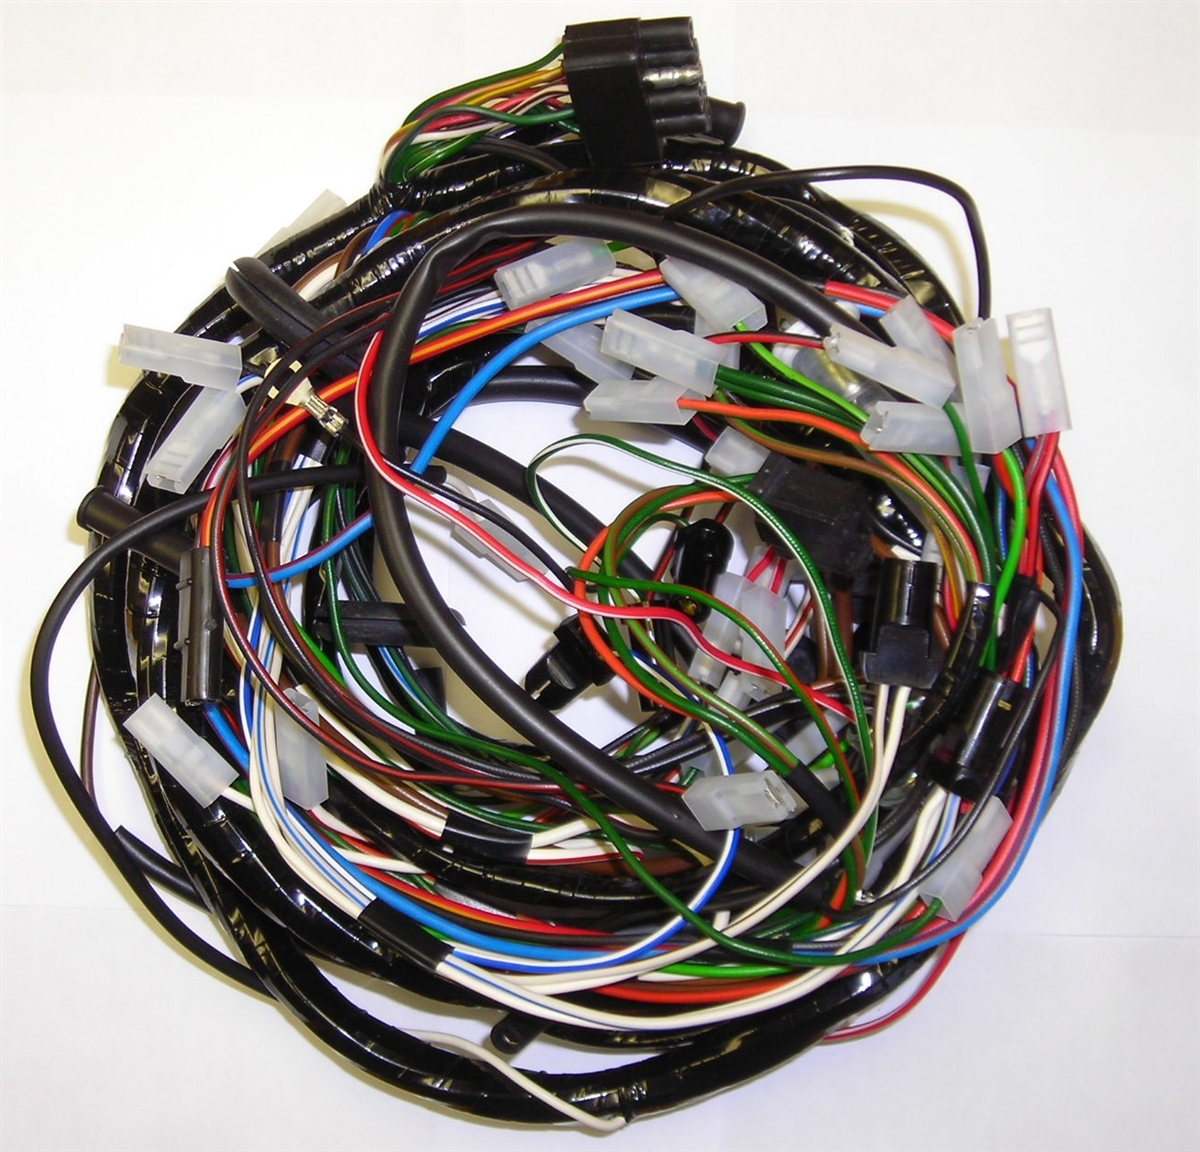 medium resolution of land rover series 3 main wiring harness land rover series 3 wiring harness for sale series 3 land rover wiring harness